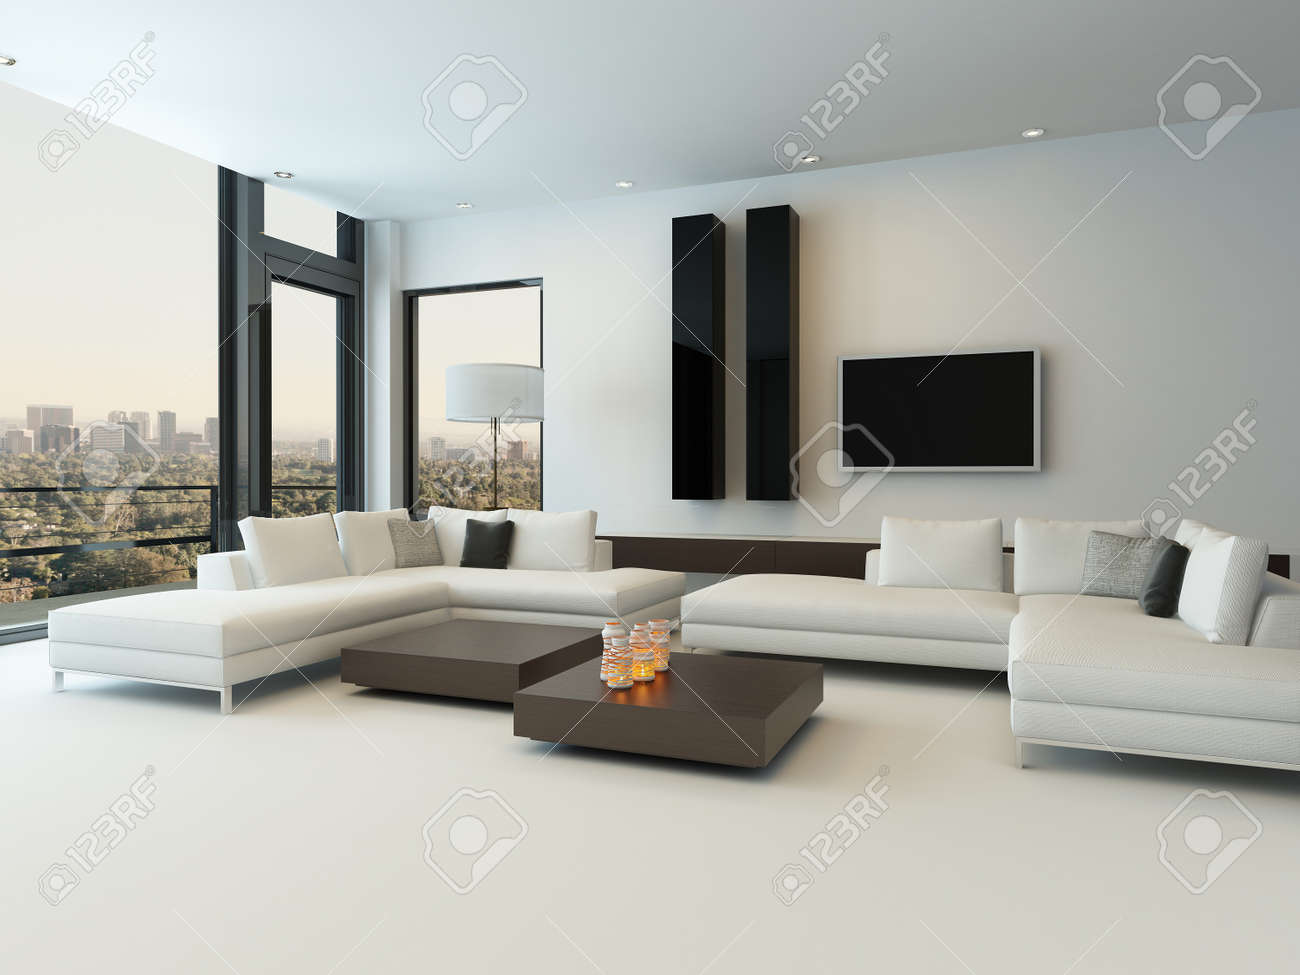 White Couch Living Room Living Room Tv Stock Photos Images Royalty Free Living Room Tv